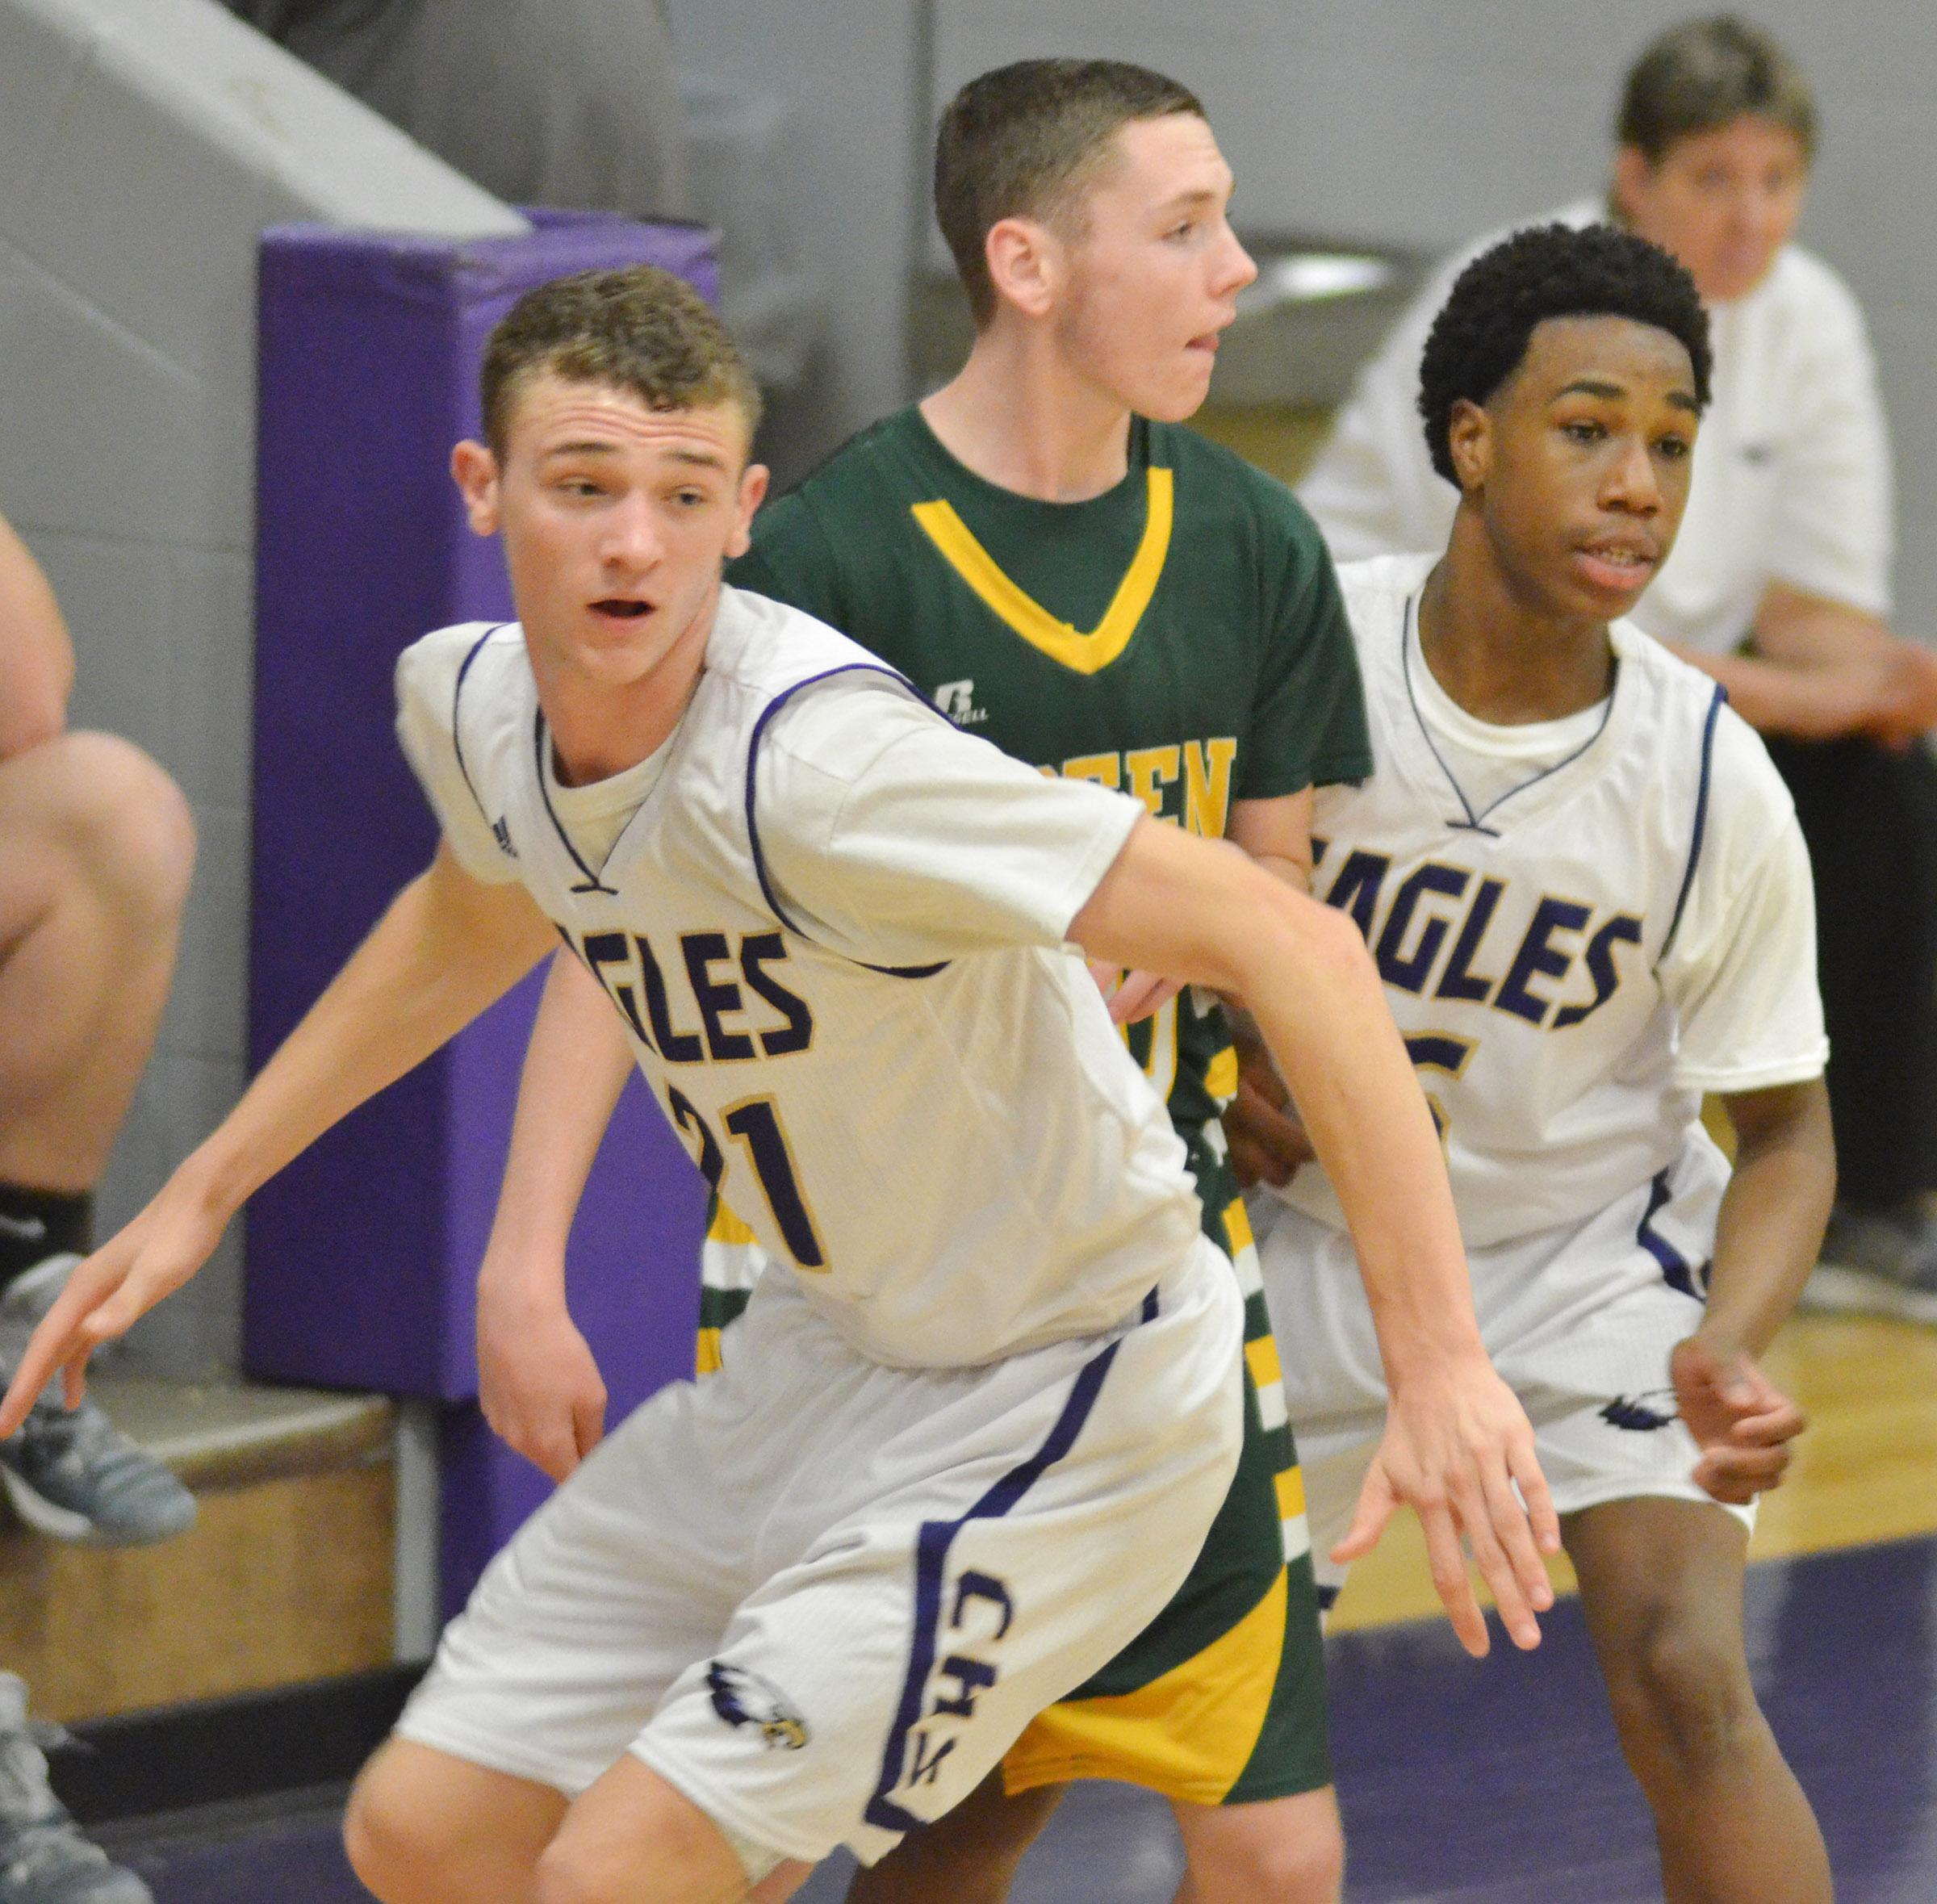 CHS junior Connor Wilson, at left, and freshman Malachi Corley play defense.